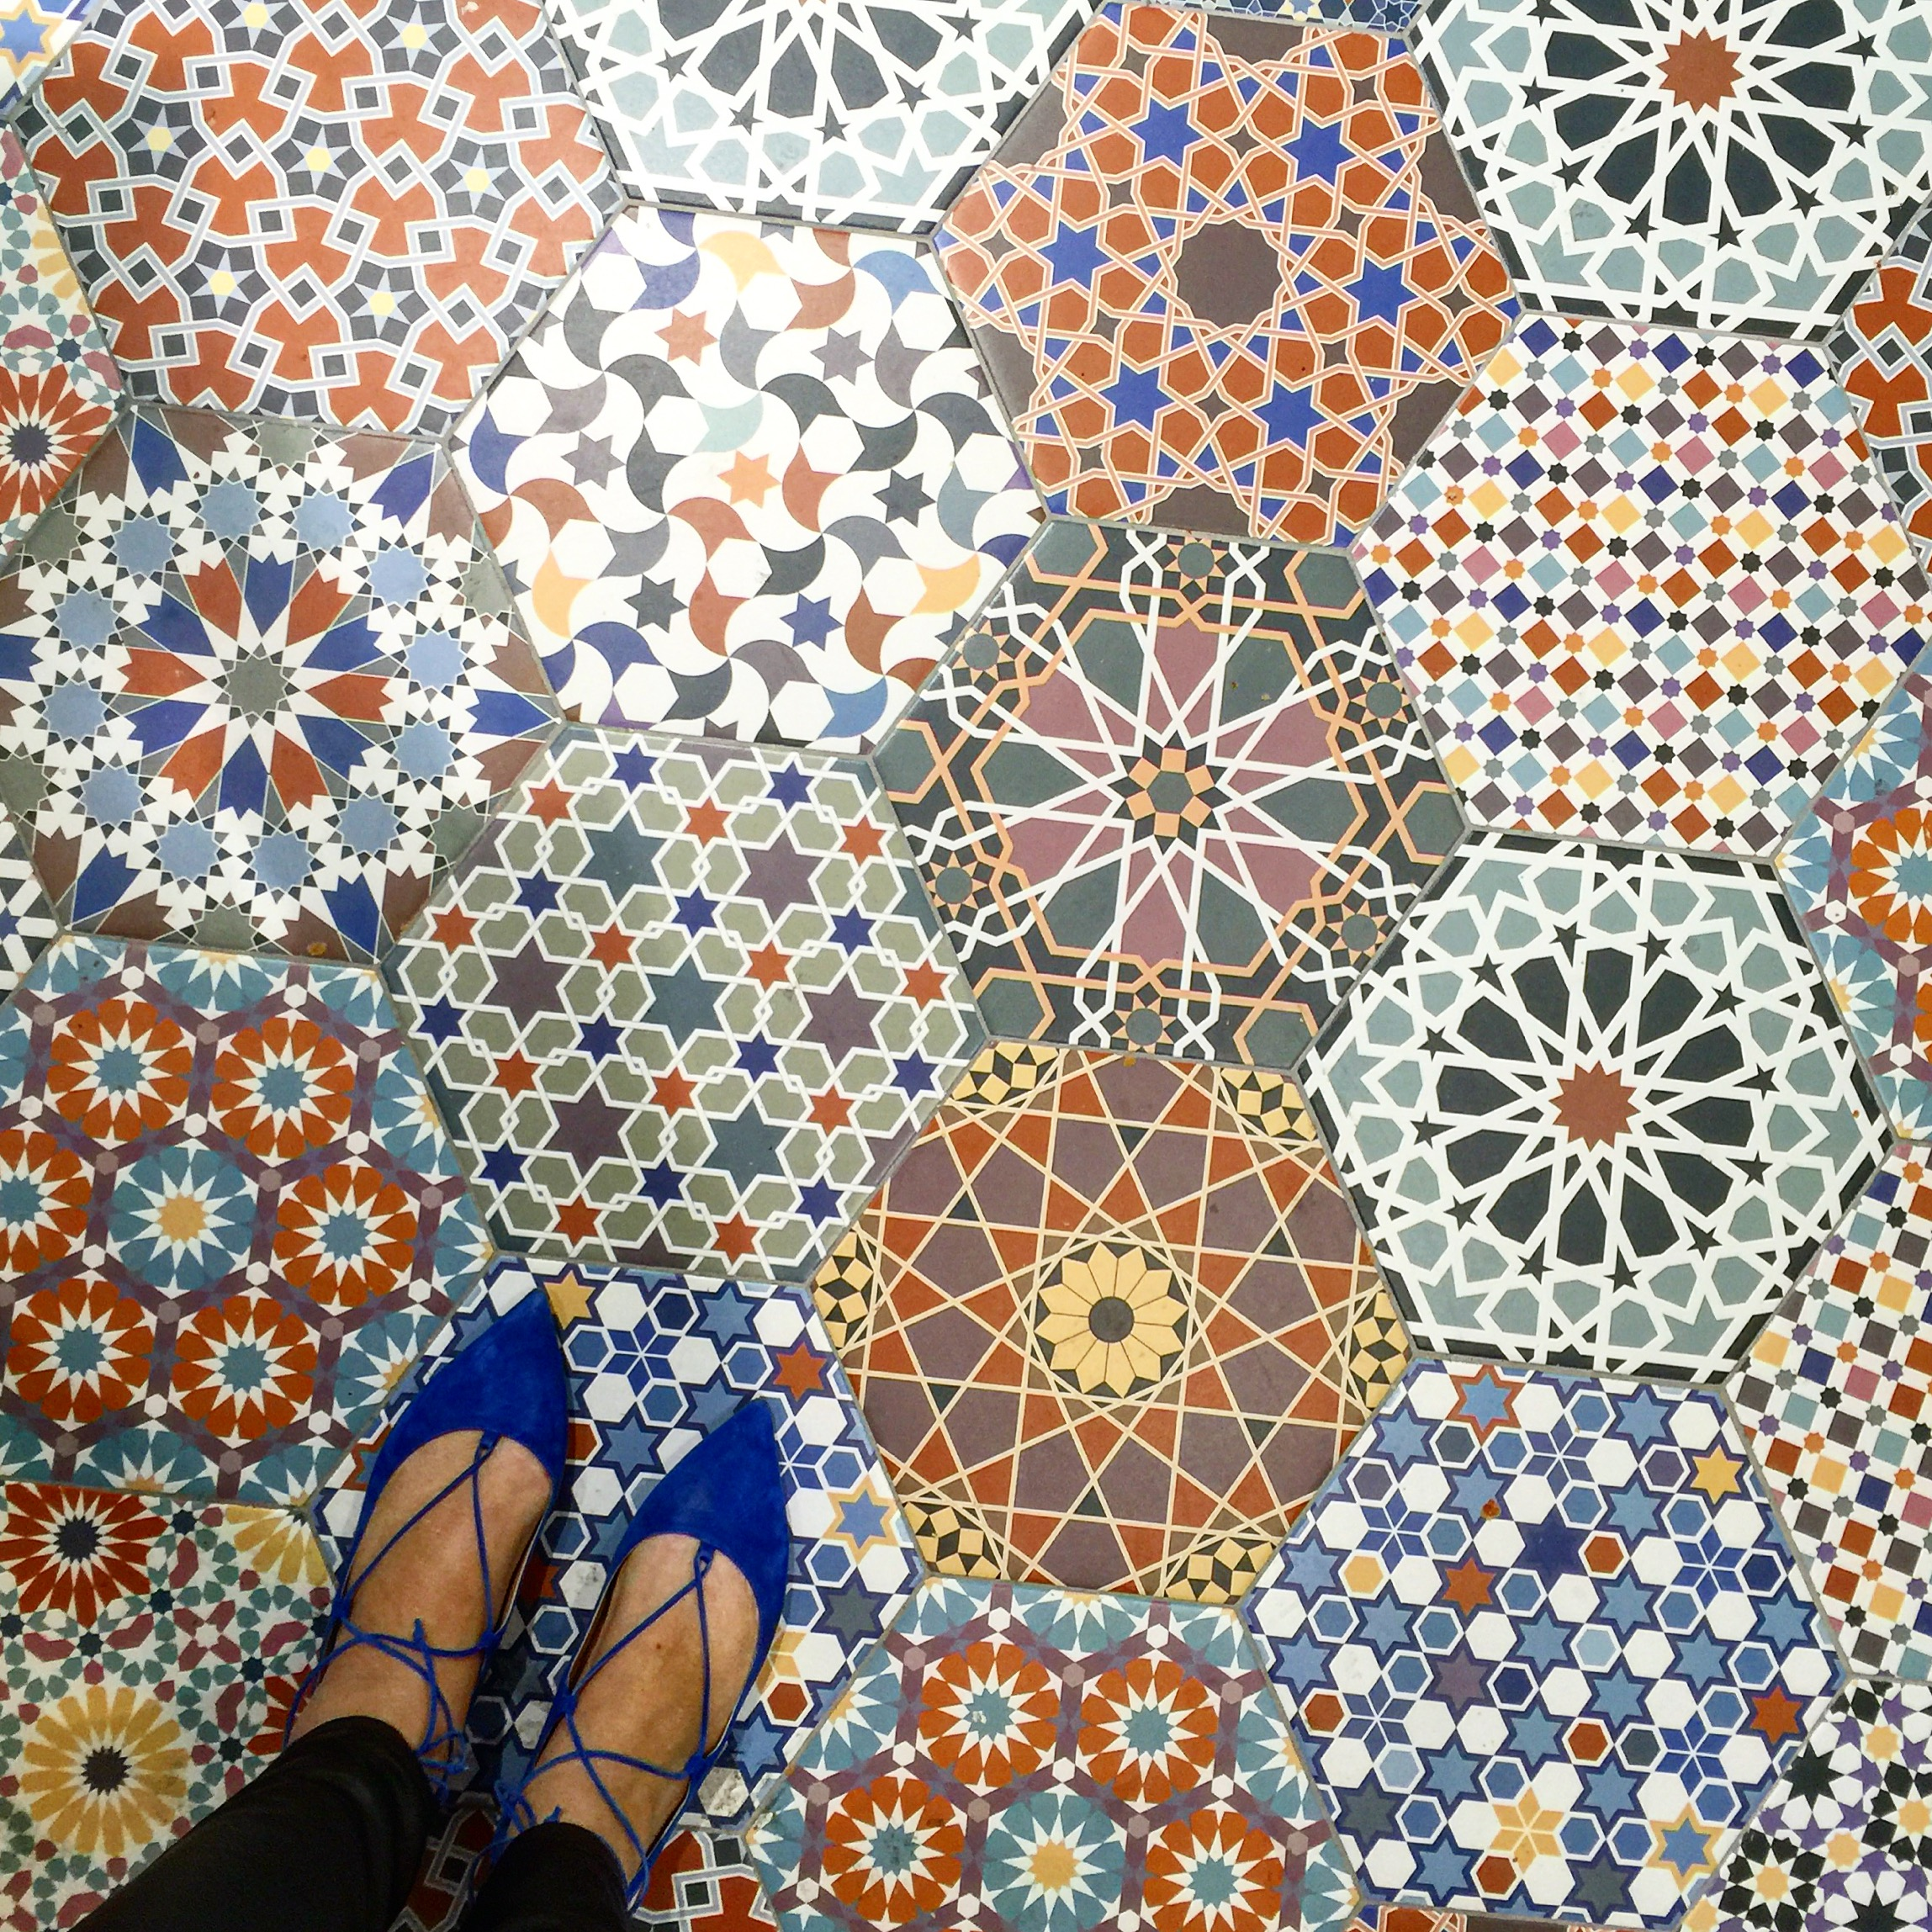 I Returned From A Fabulous Trip To Spain With Tile Of Few Weeks Ago And Cannot Shake It The Kindness Hospitality Spanish People